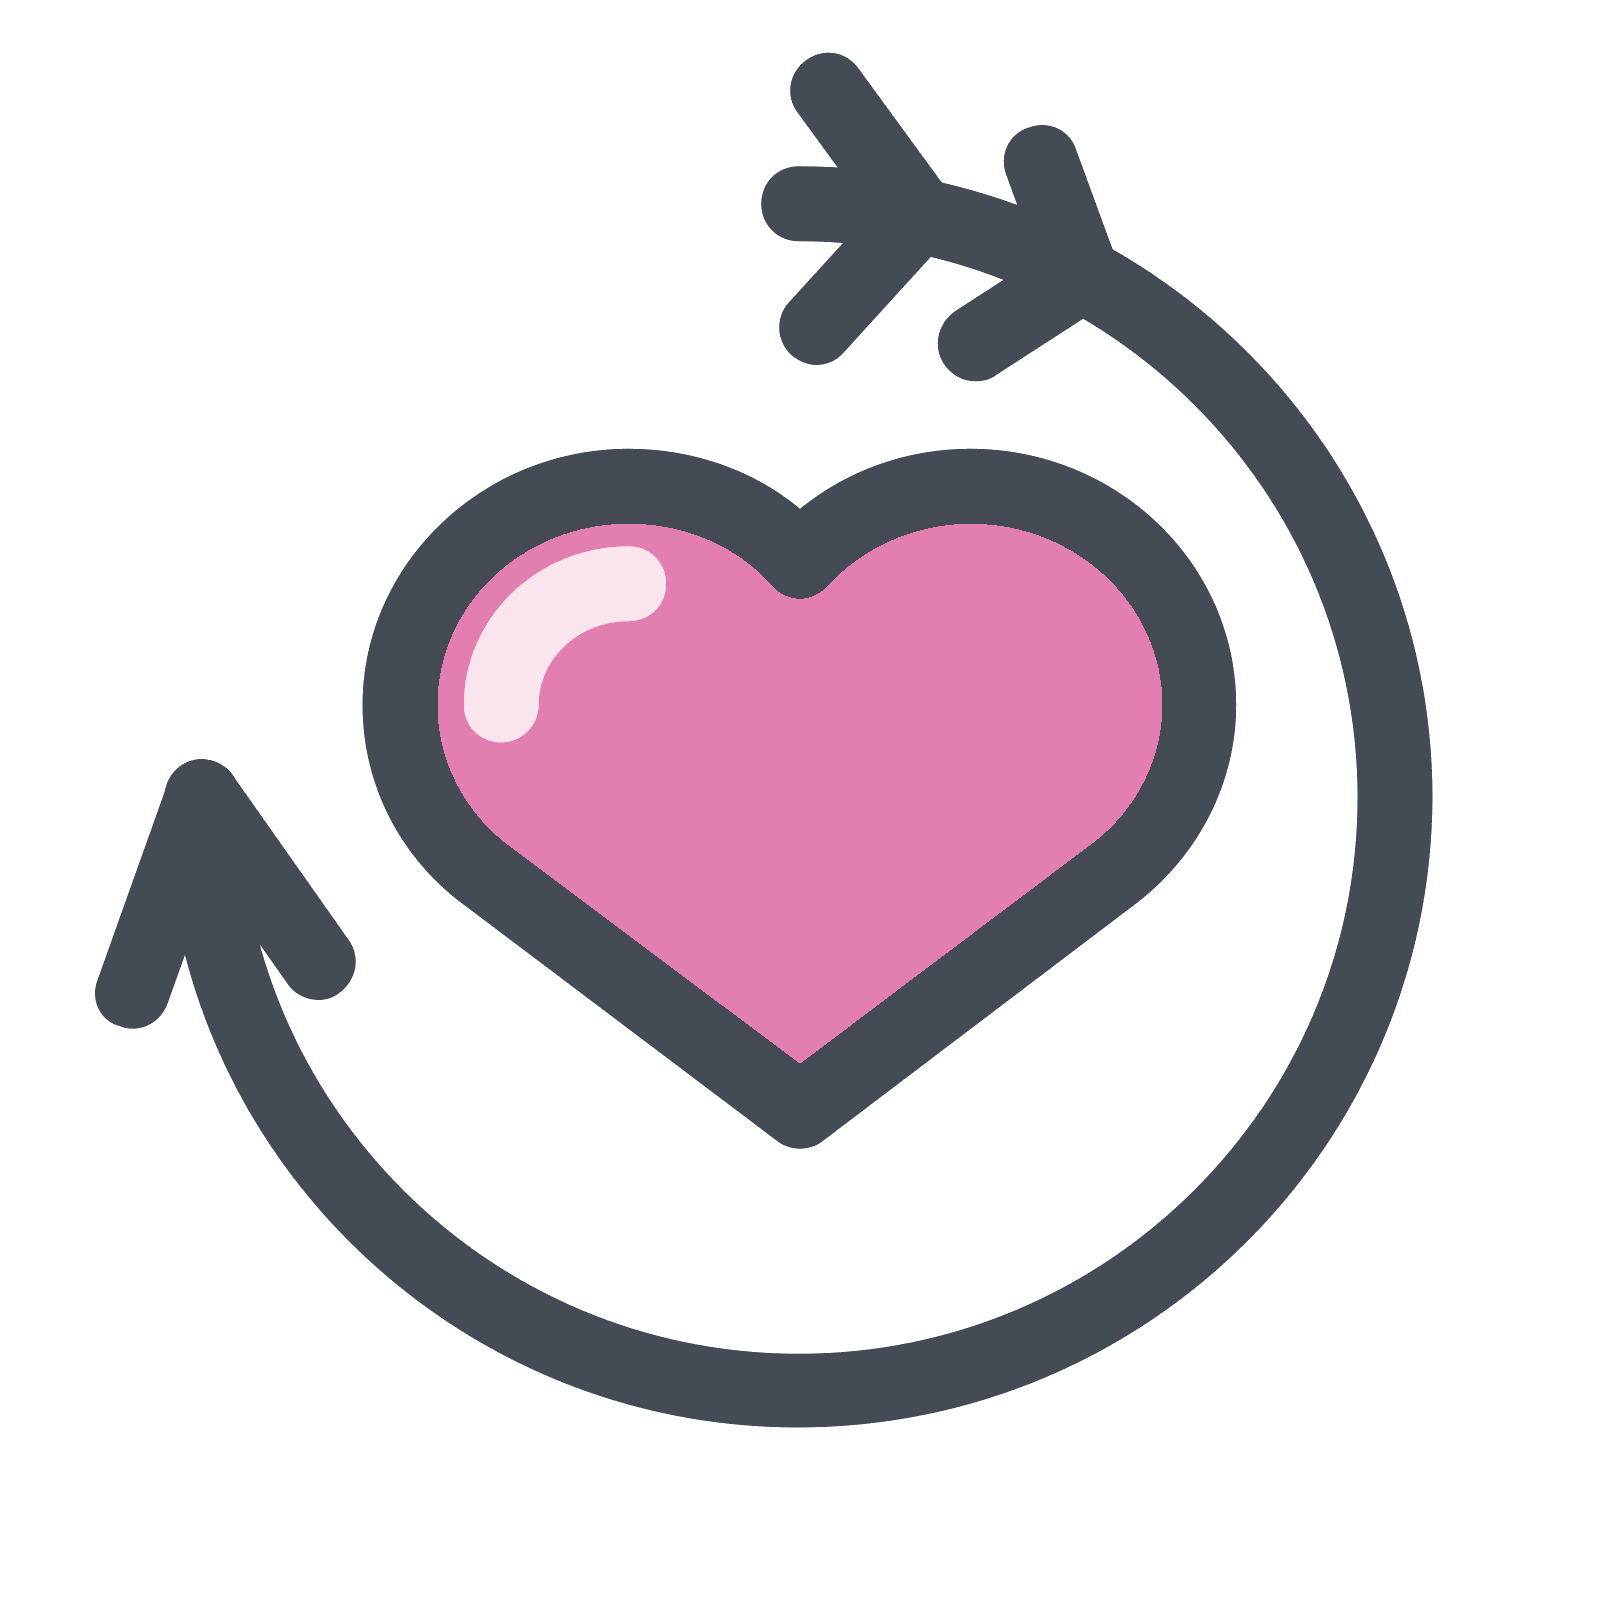 Love icon png. Path free download and